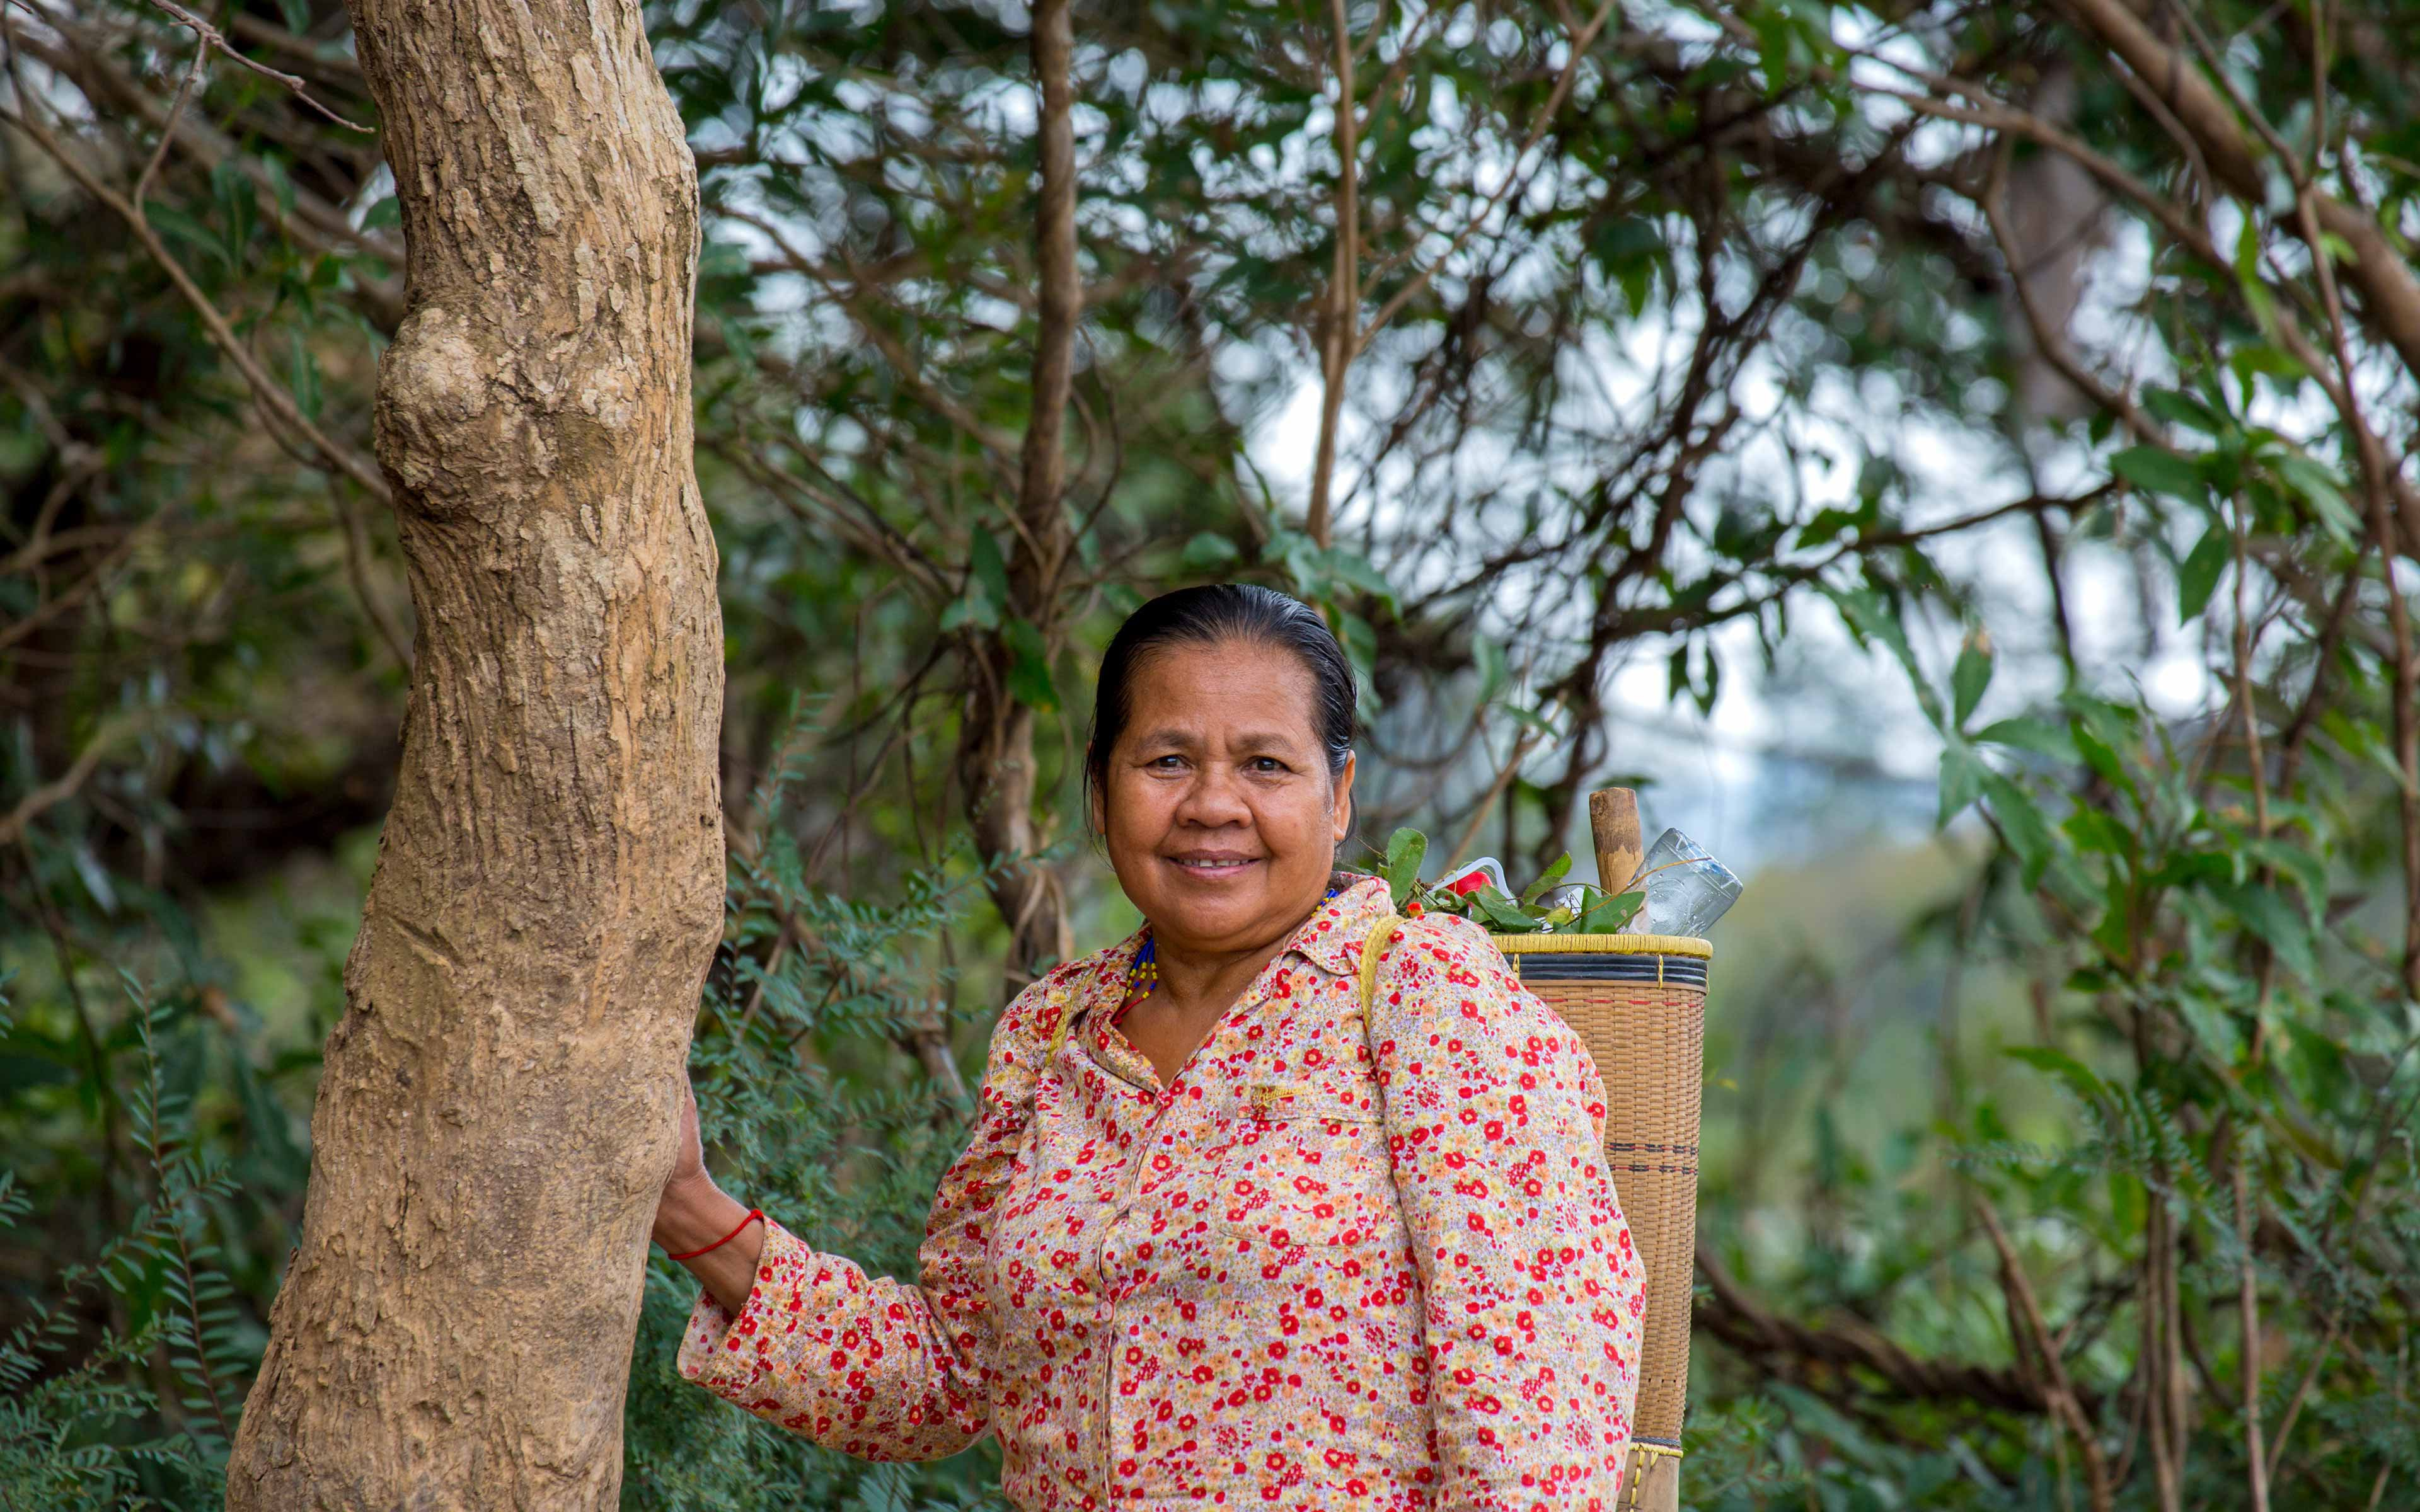 """Dam Chanthy, director of the Highlander Association:  """"When I heard the women in Padol led the community to stop the outsiders from cutting down the forest I was so happy, because it shows they understand their rights. We trained them in human rights and leadership, so I was happy to see them use all this training to protect their resources. I hope they can save their forest forever."""""""